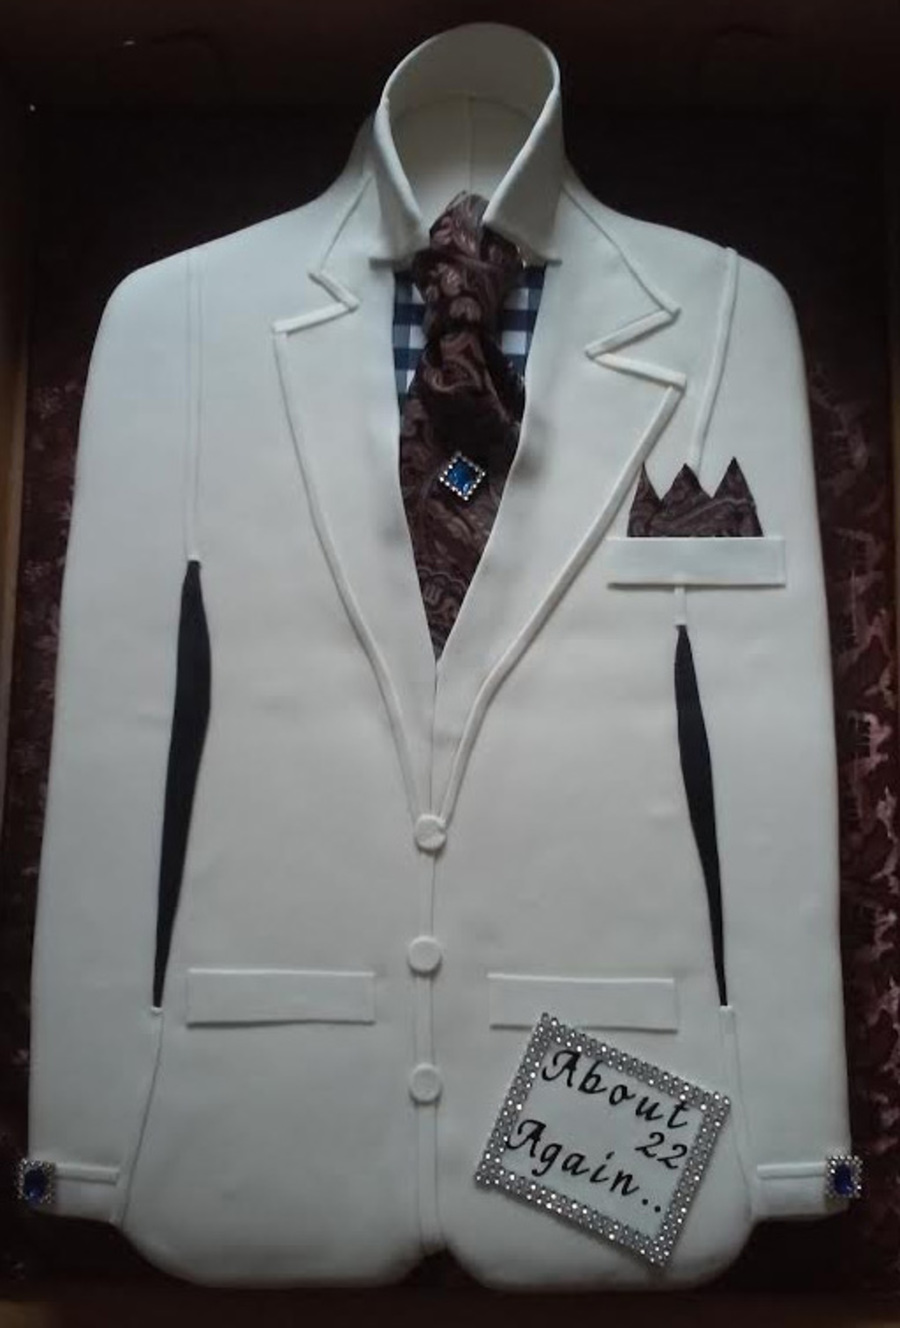 Birthday Swag Suit Jacket Cake Cakecentral Com